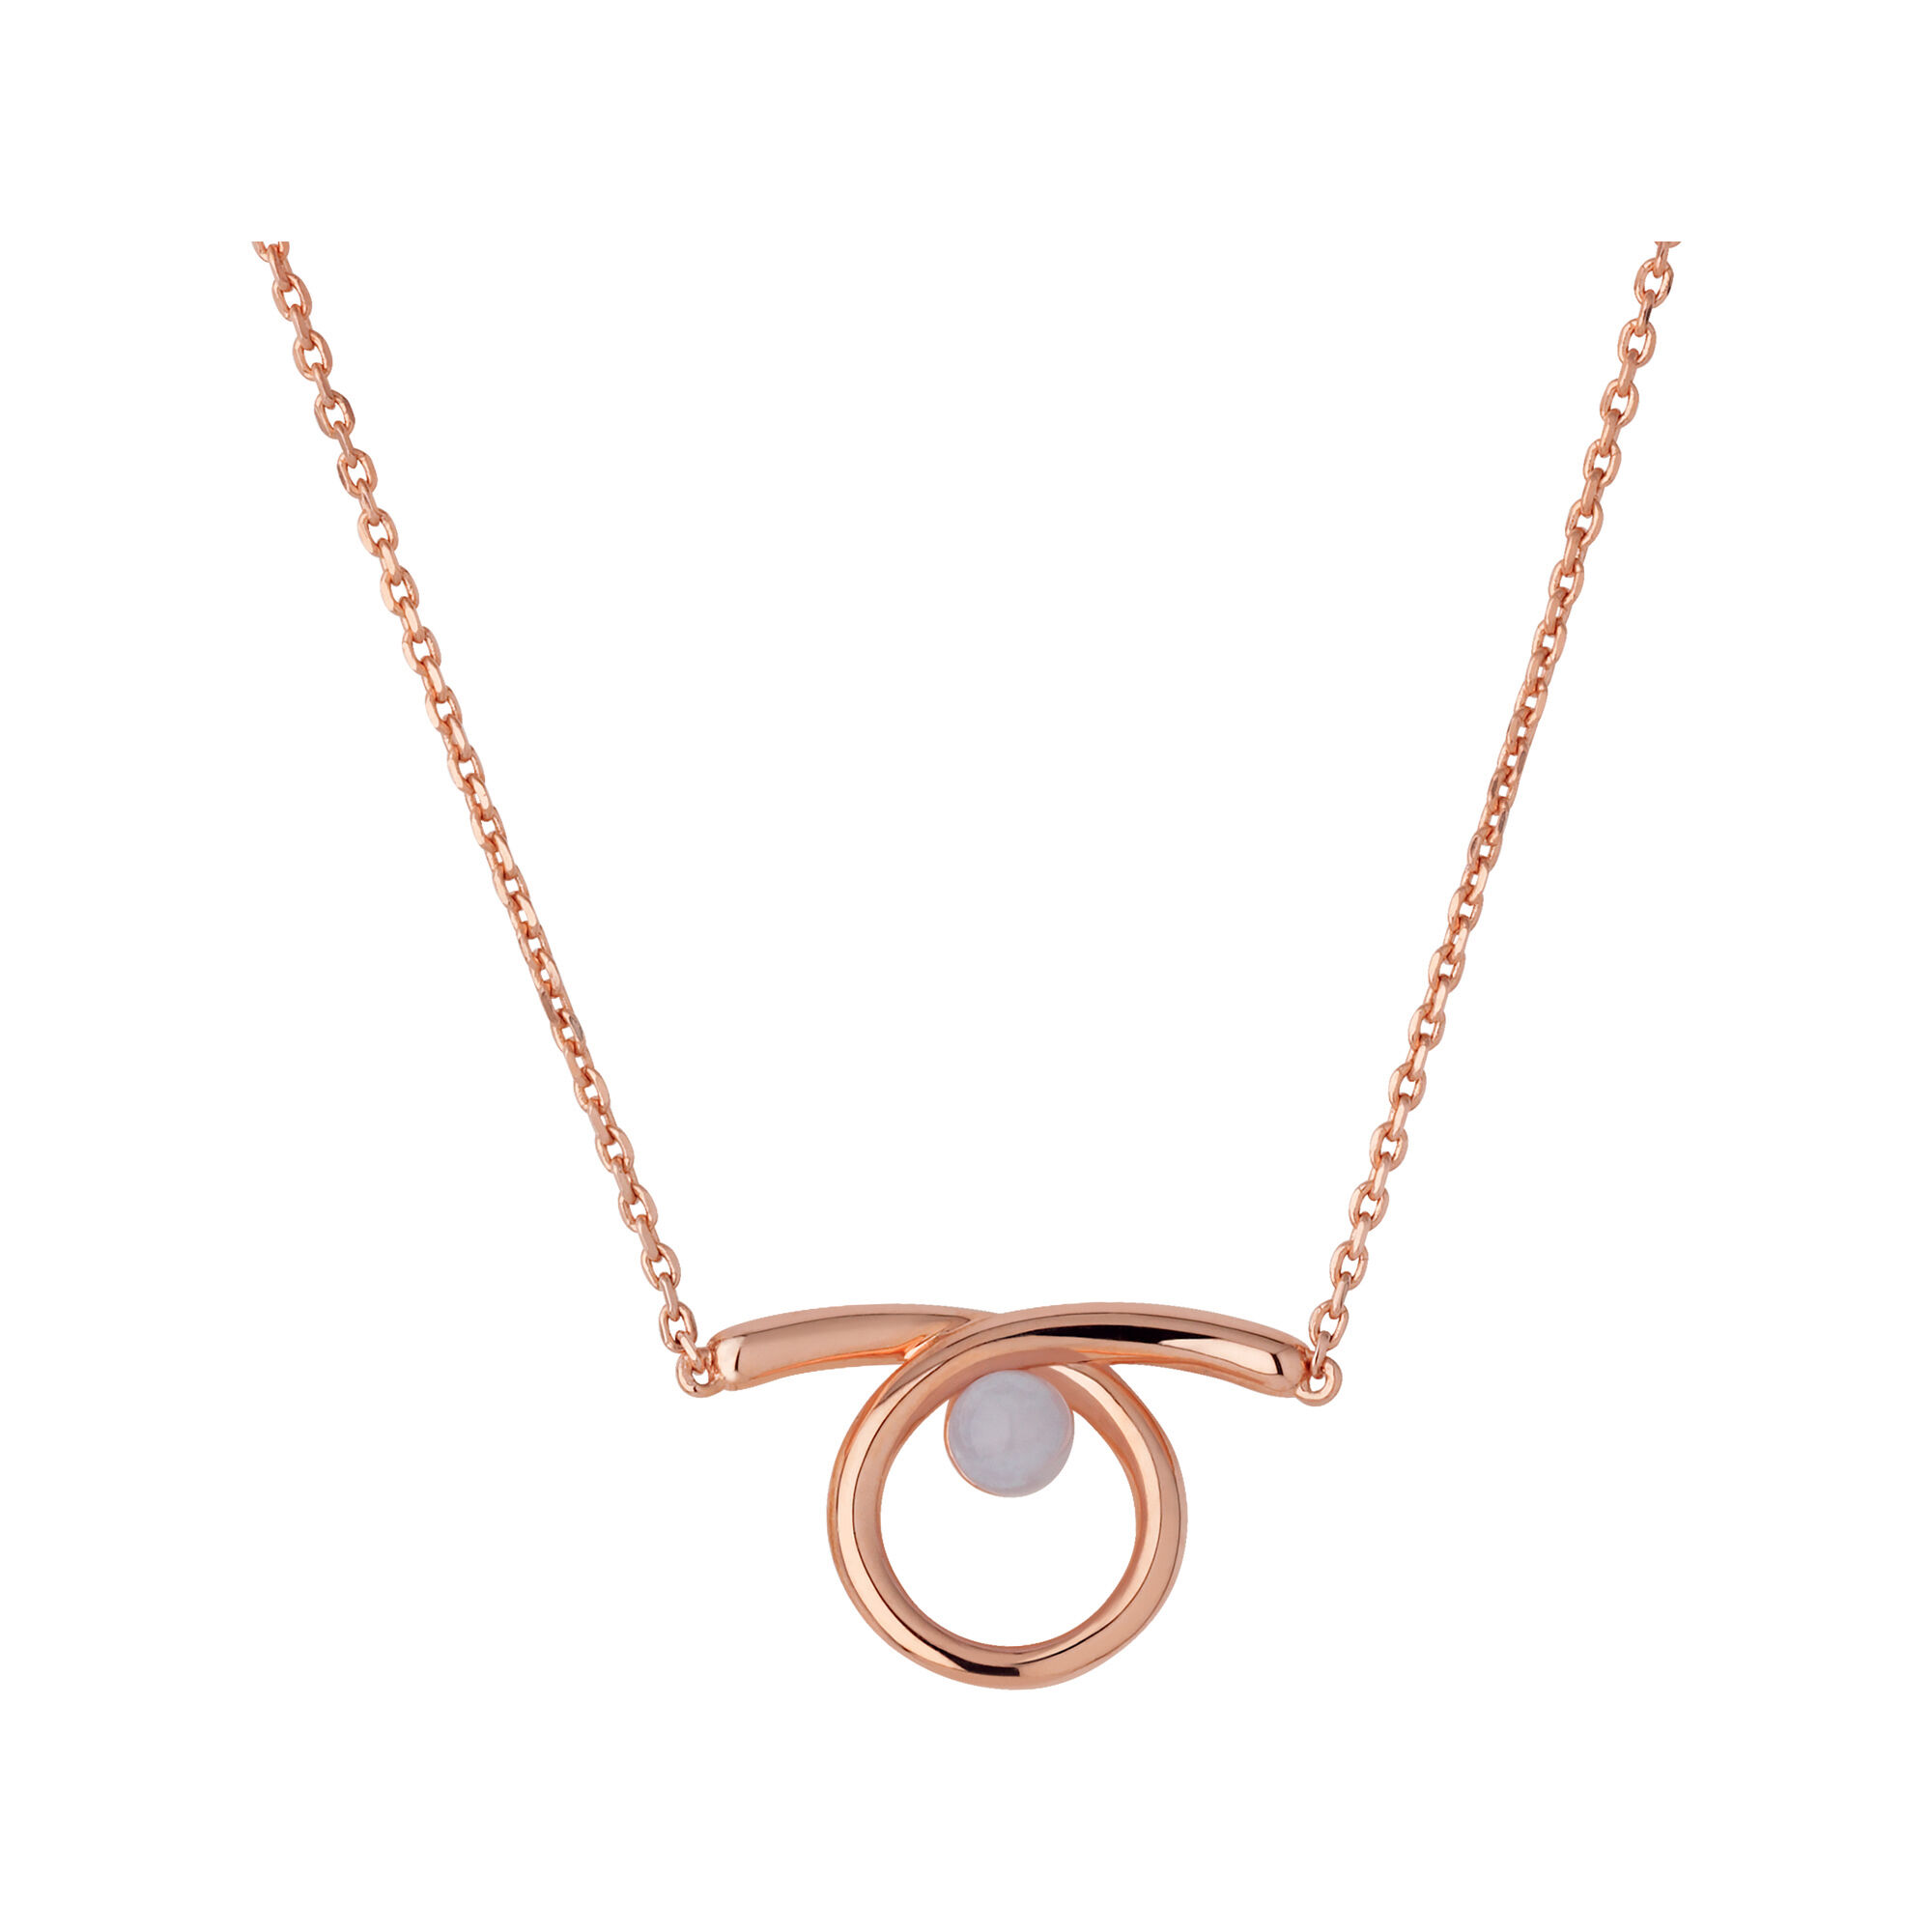 lacey fv latest rose vous jewellery rg square necklace products collections fasion fabuleux gold